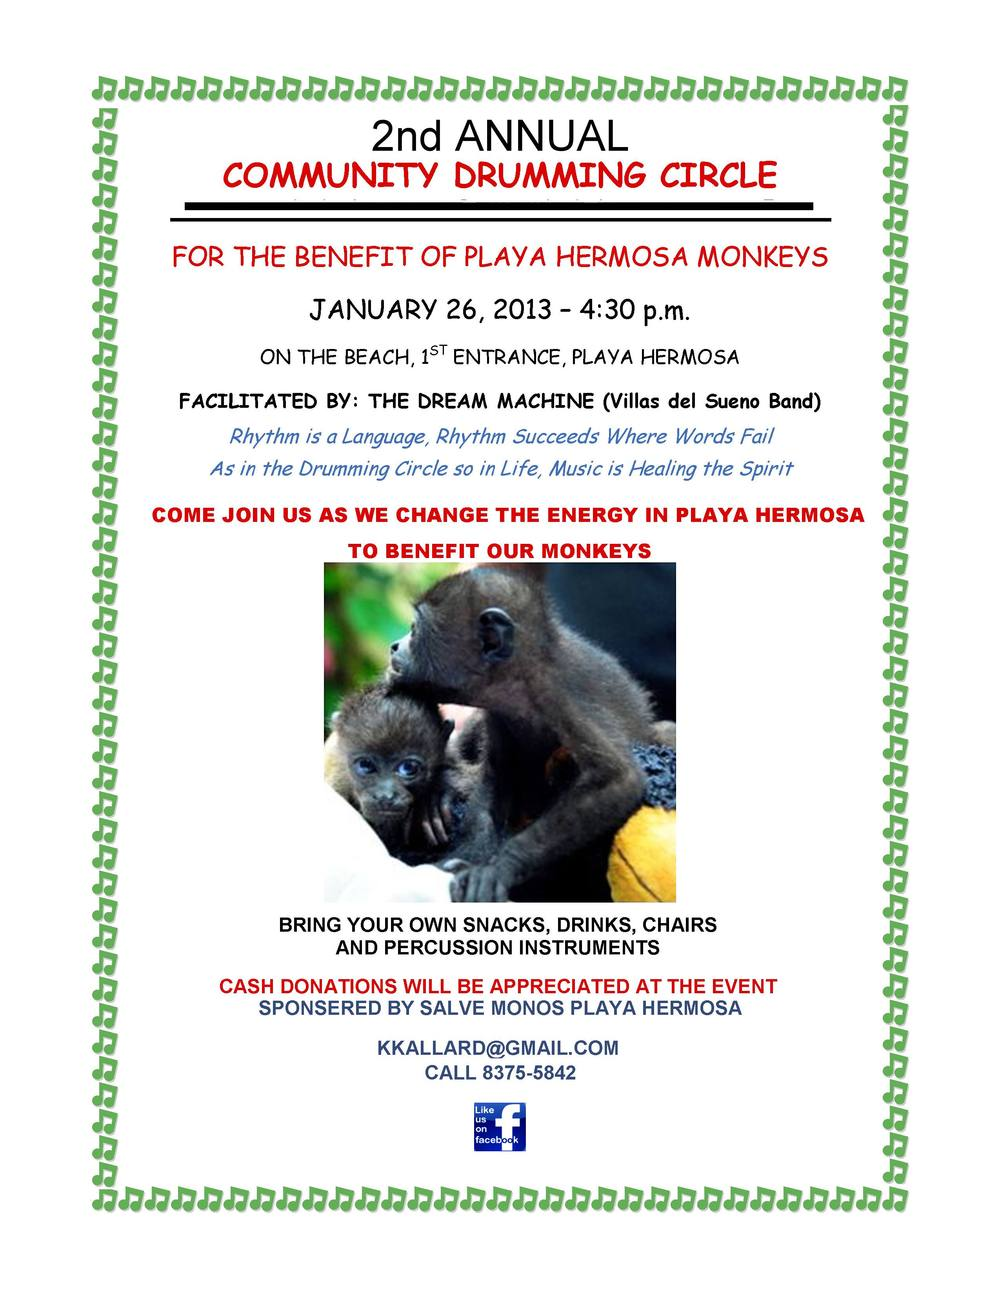 drumming circle_2013_email version.jpg